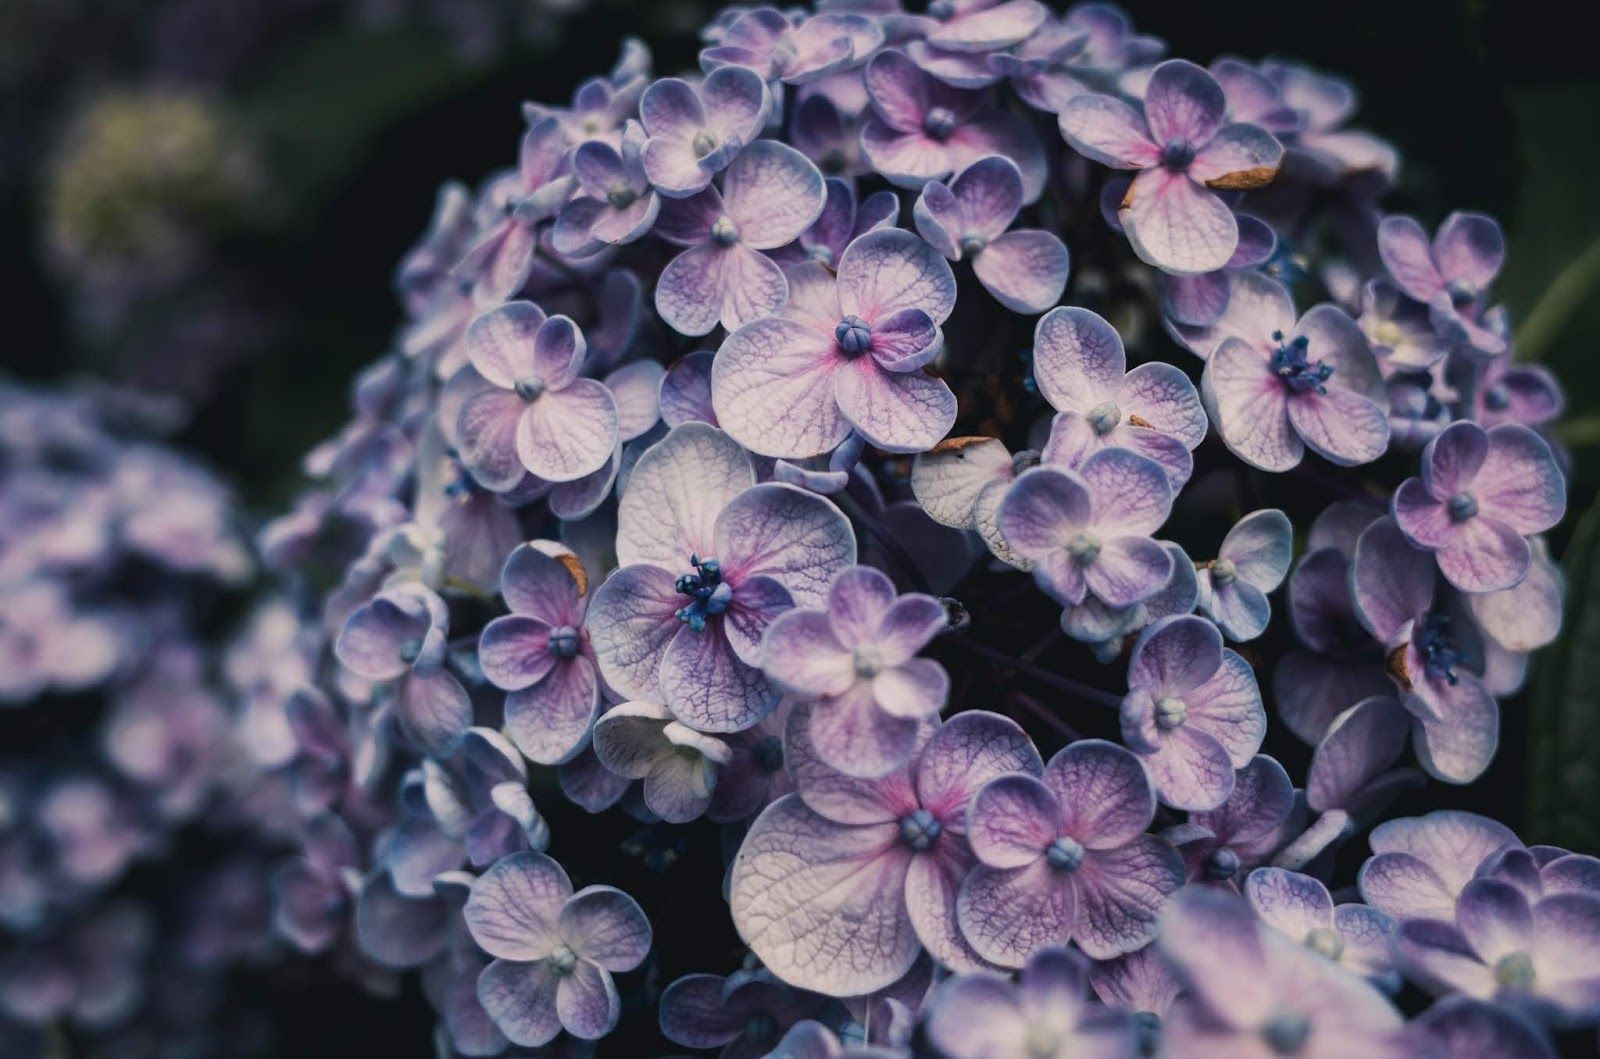 Beautiful closeup photography of a purple lilac floral branch. With pretty greenery backdrop and small lilac flowers.